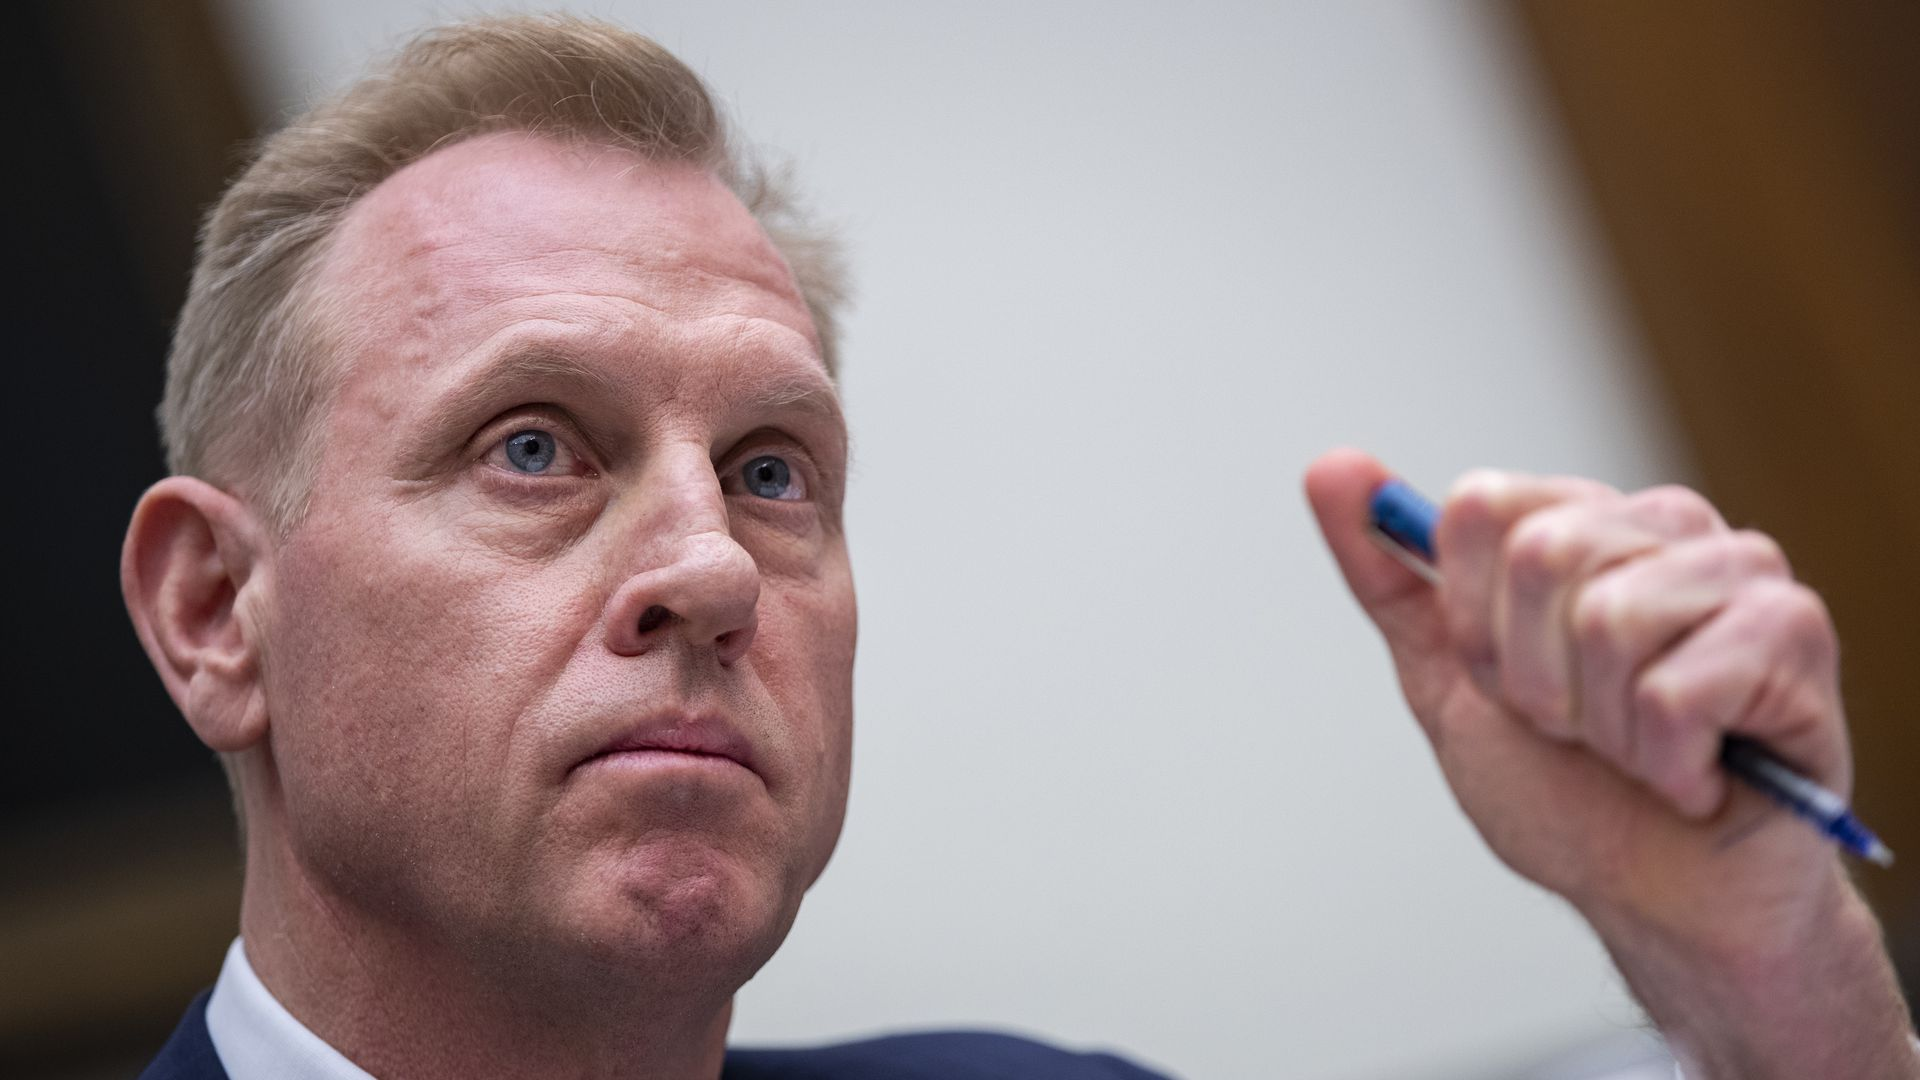 In this image, Patrick Shanahan sits and frowns while holding a pen in his fist.